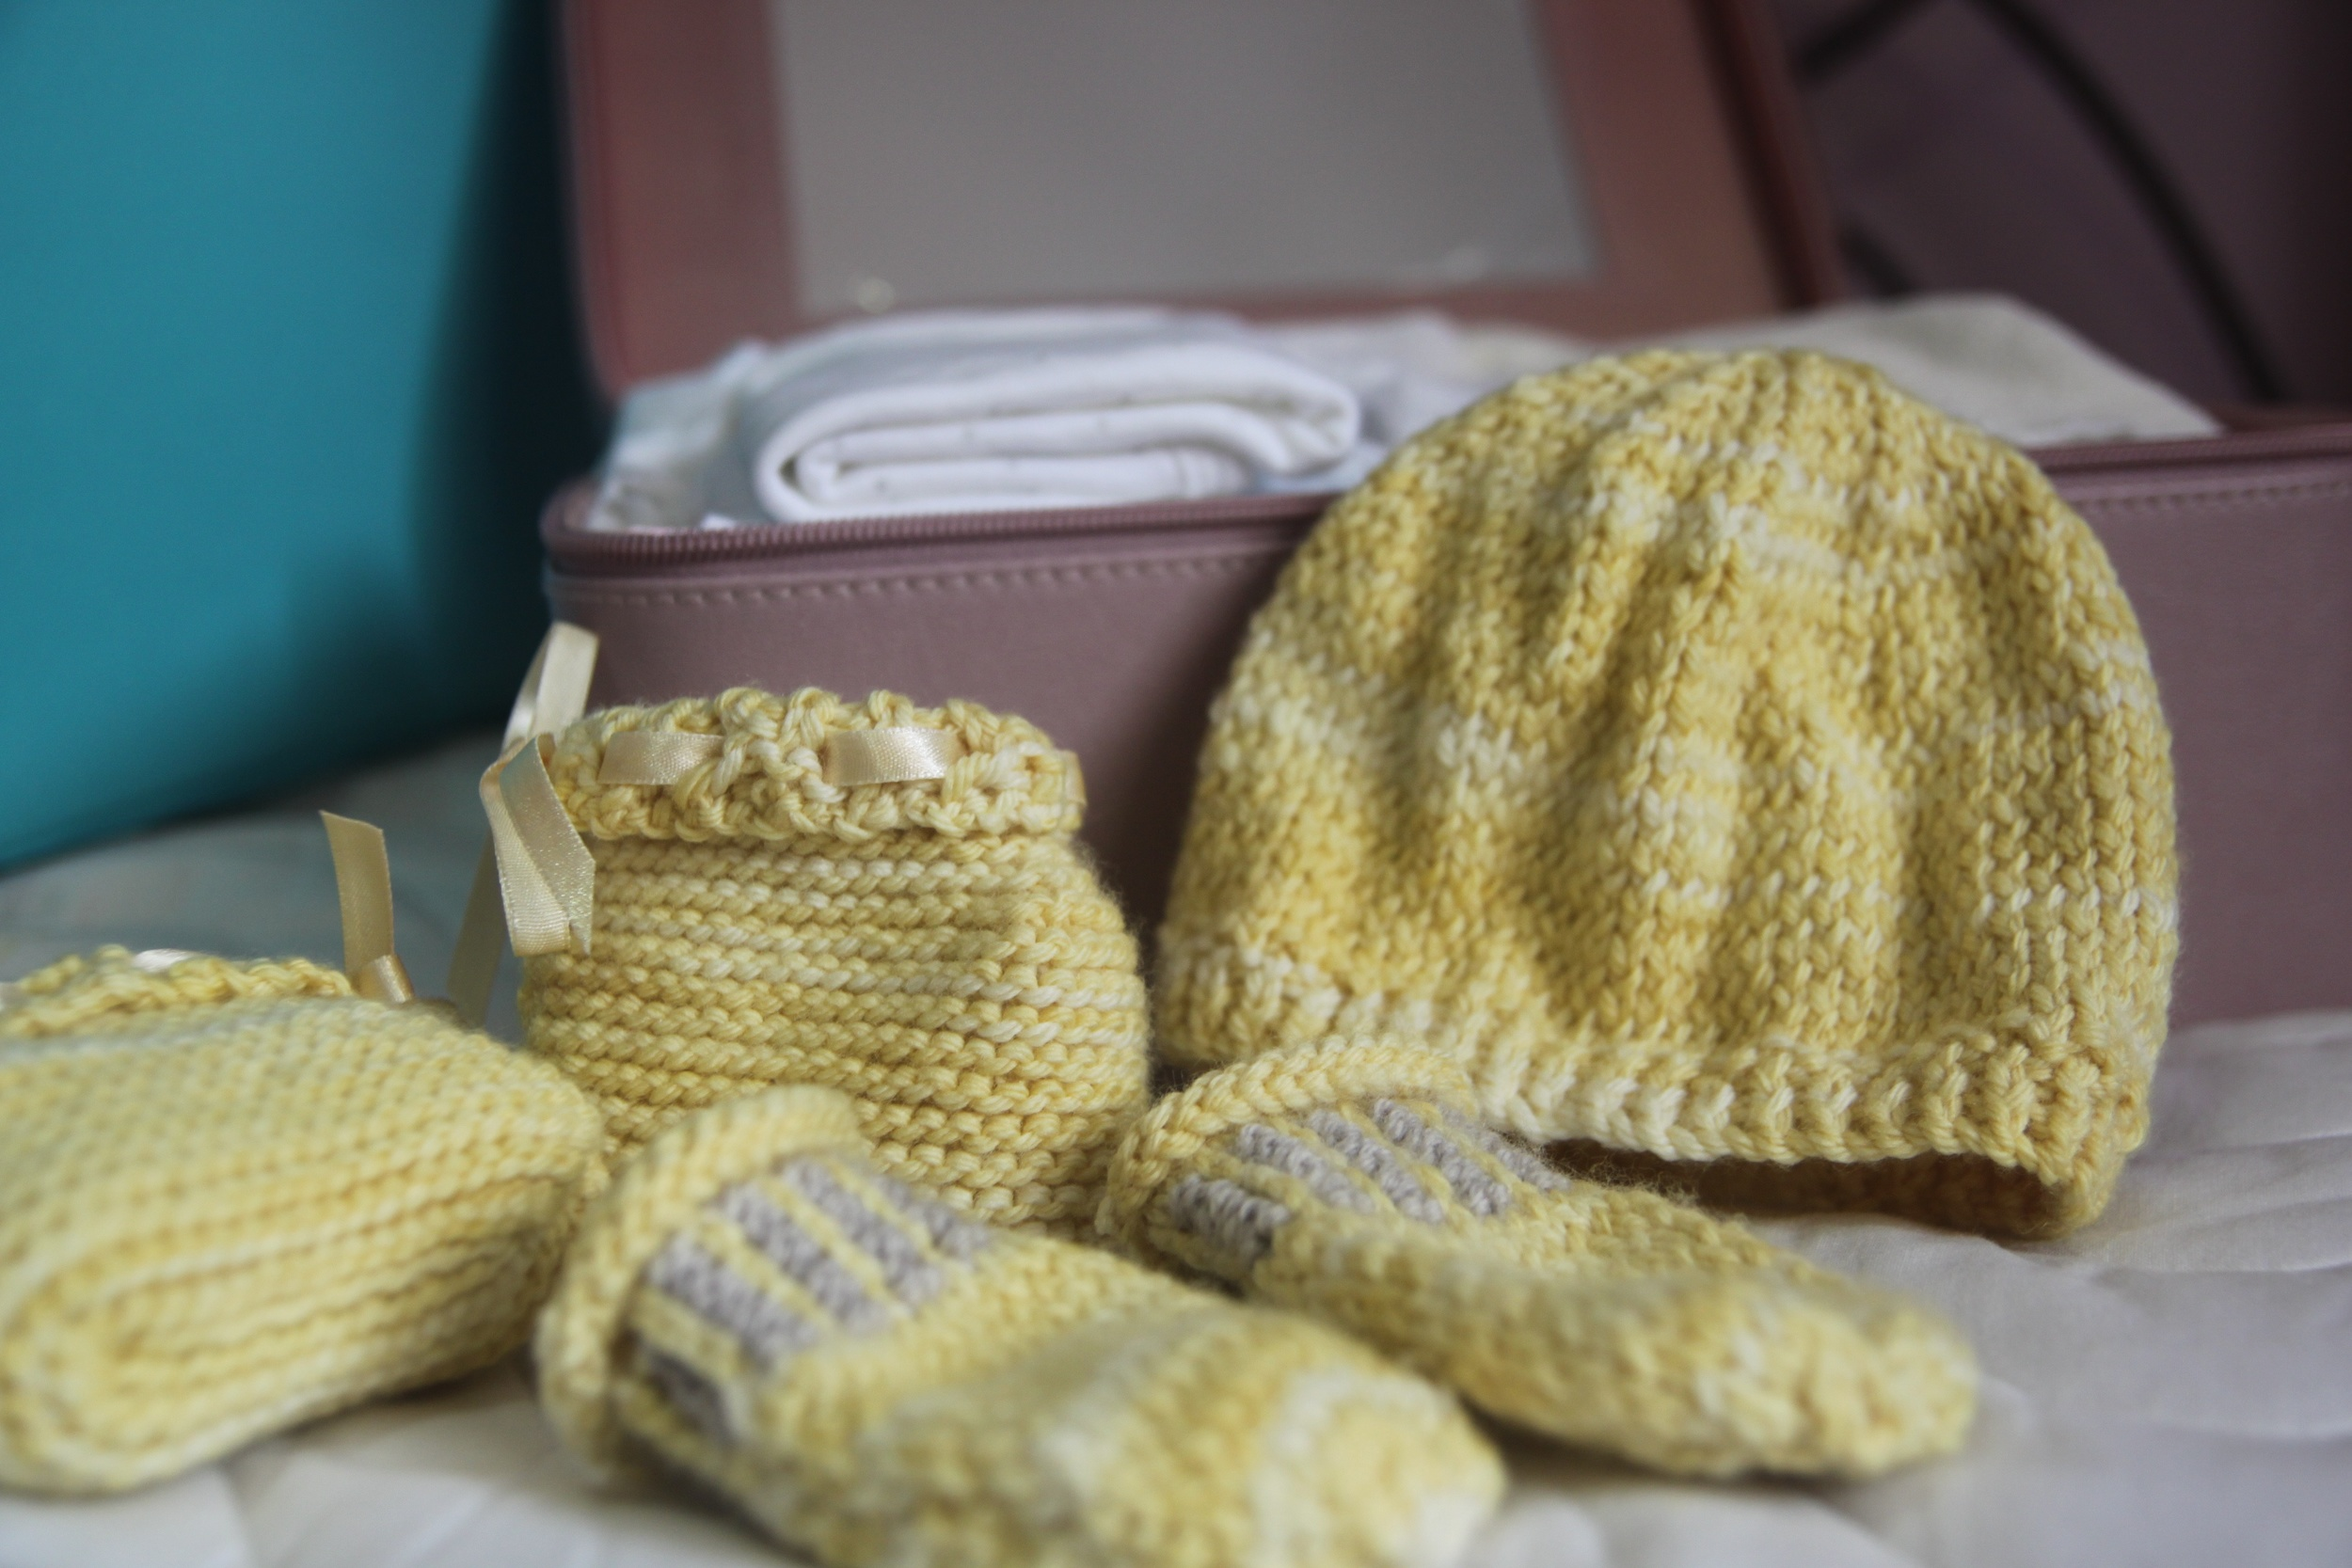 A small suitcase of baby clothes and blanket plus my hand-knitted hat, mittens and baby boots.